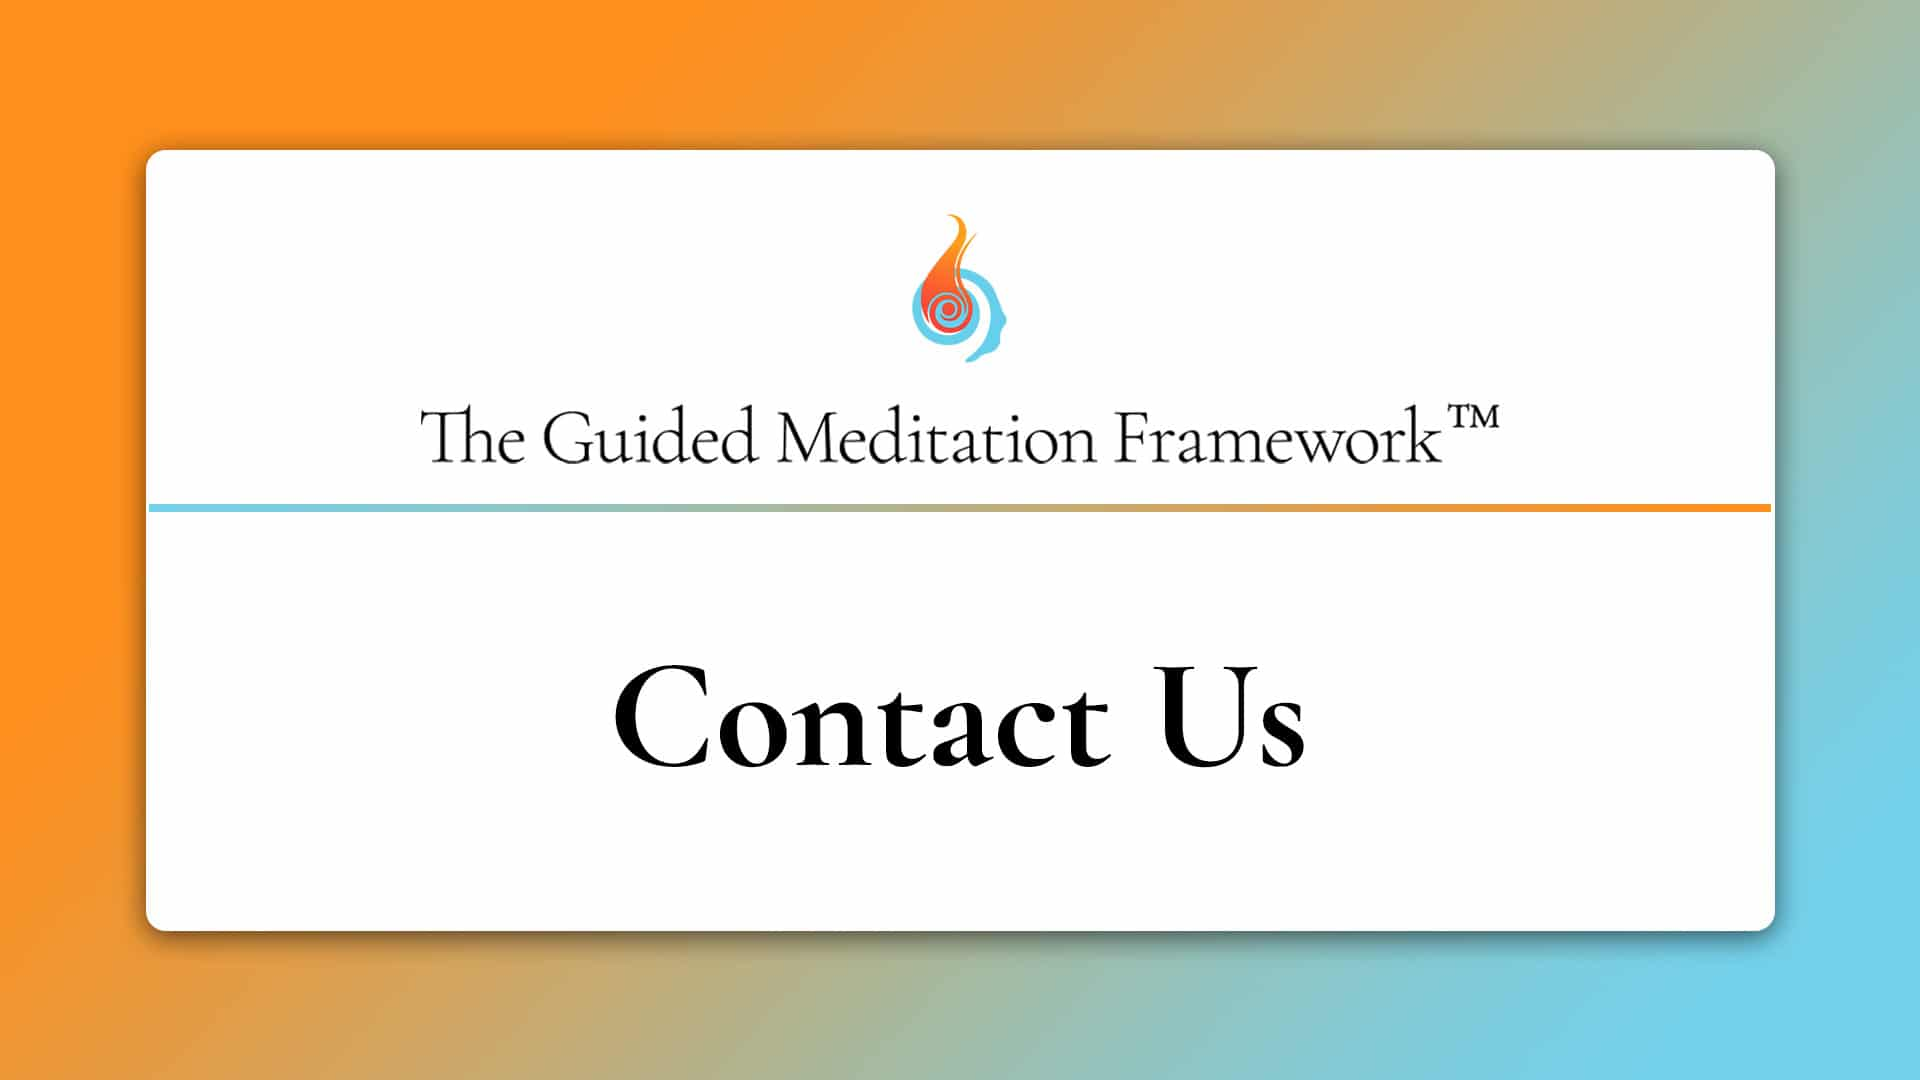 content The Guided Meditation Framework